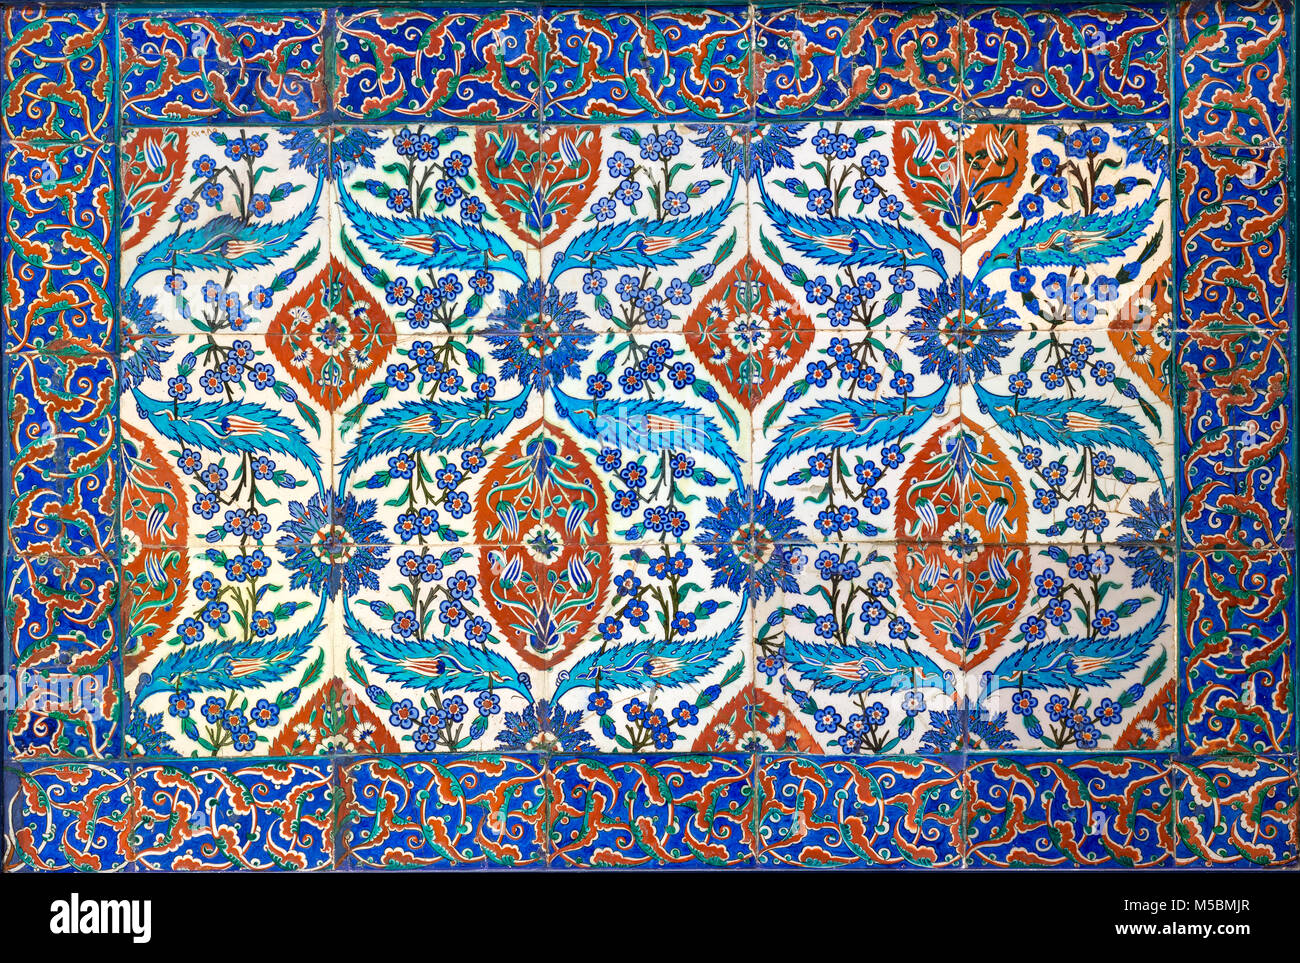 Ottoman era style glazed ceramic tiles from Iznik (Turkey) decorated with floral ornamentations, From the Museum - Stock Image